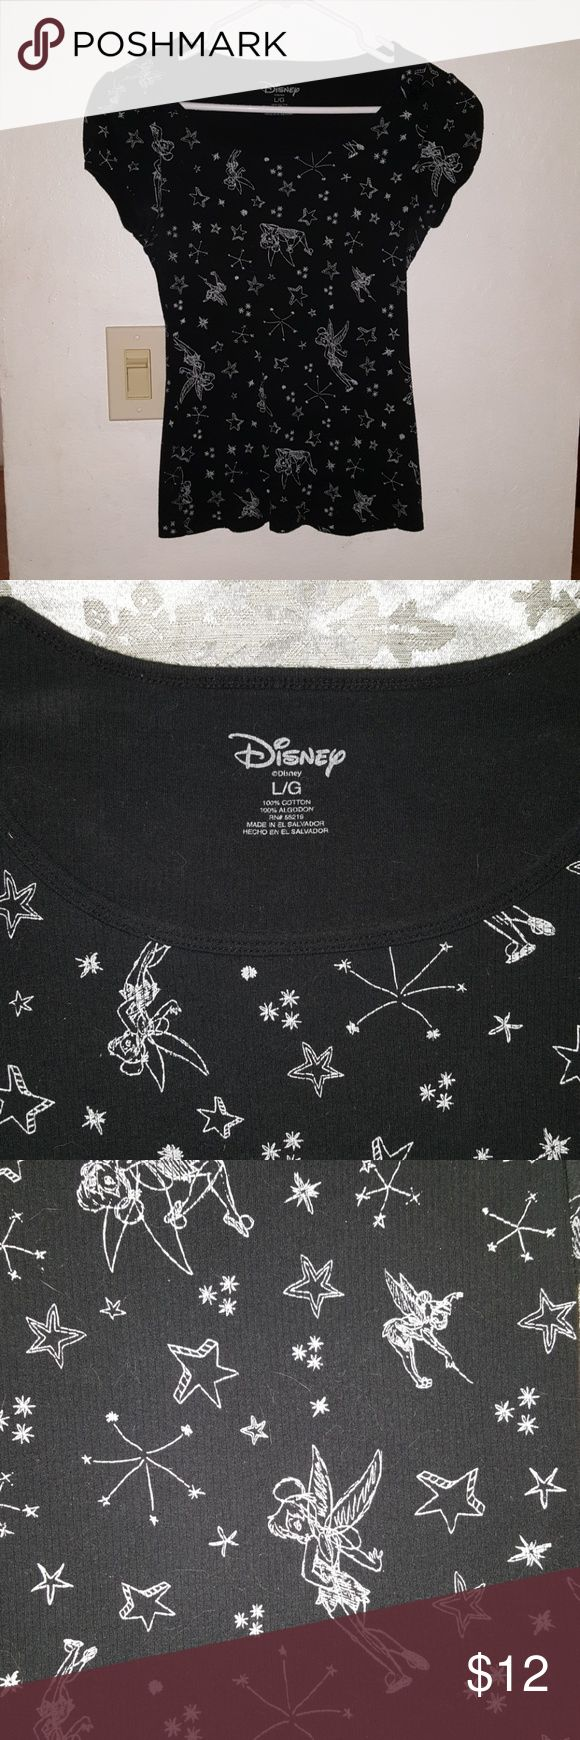 Disney Tinkerbell shirt Really cute Disney shirt . black with Tinkerbell and stars pattern . cap sleeves w/ little star buttons . size large girls but fits like a small in ladies . Used but in good condition . Disney Tops Tees - Short Sleeve